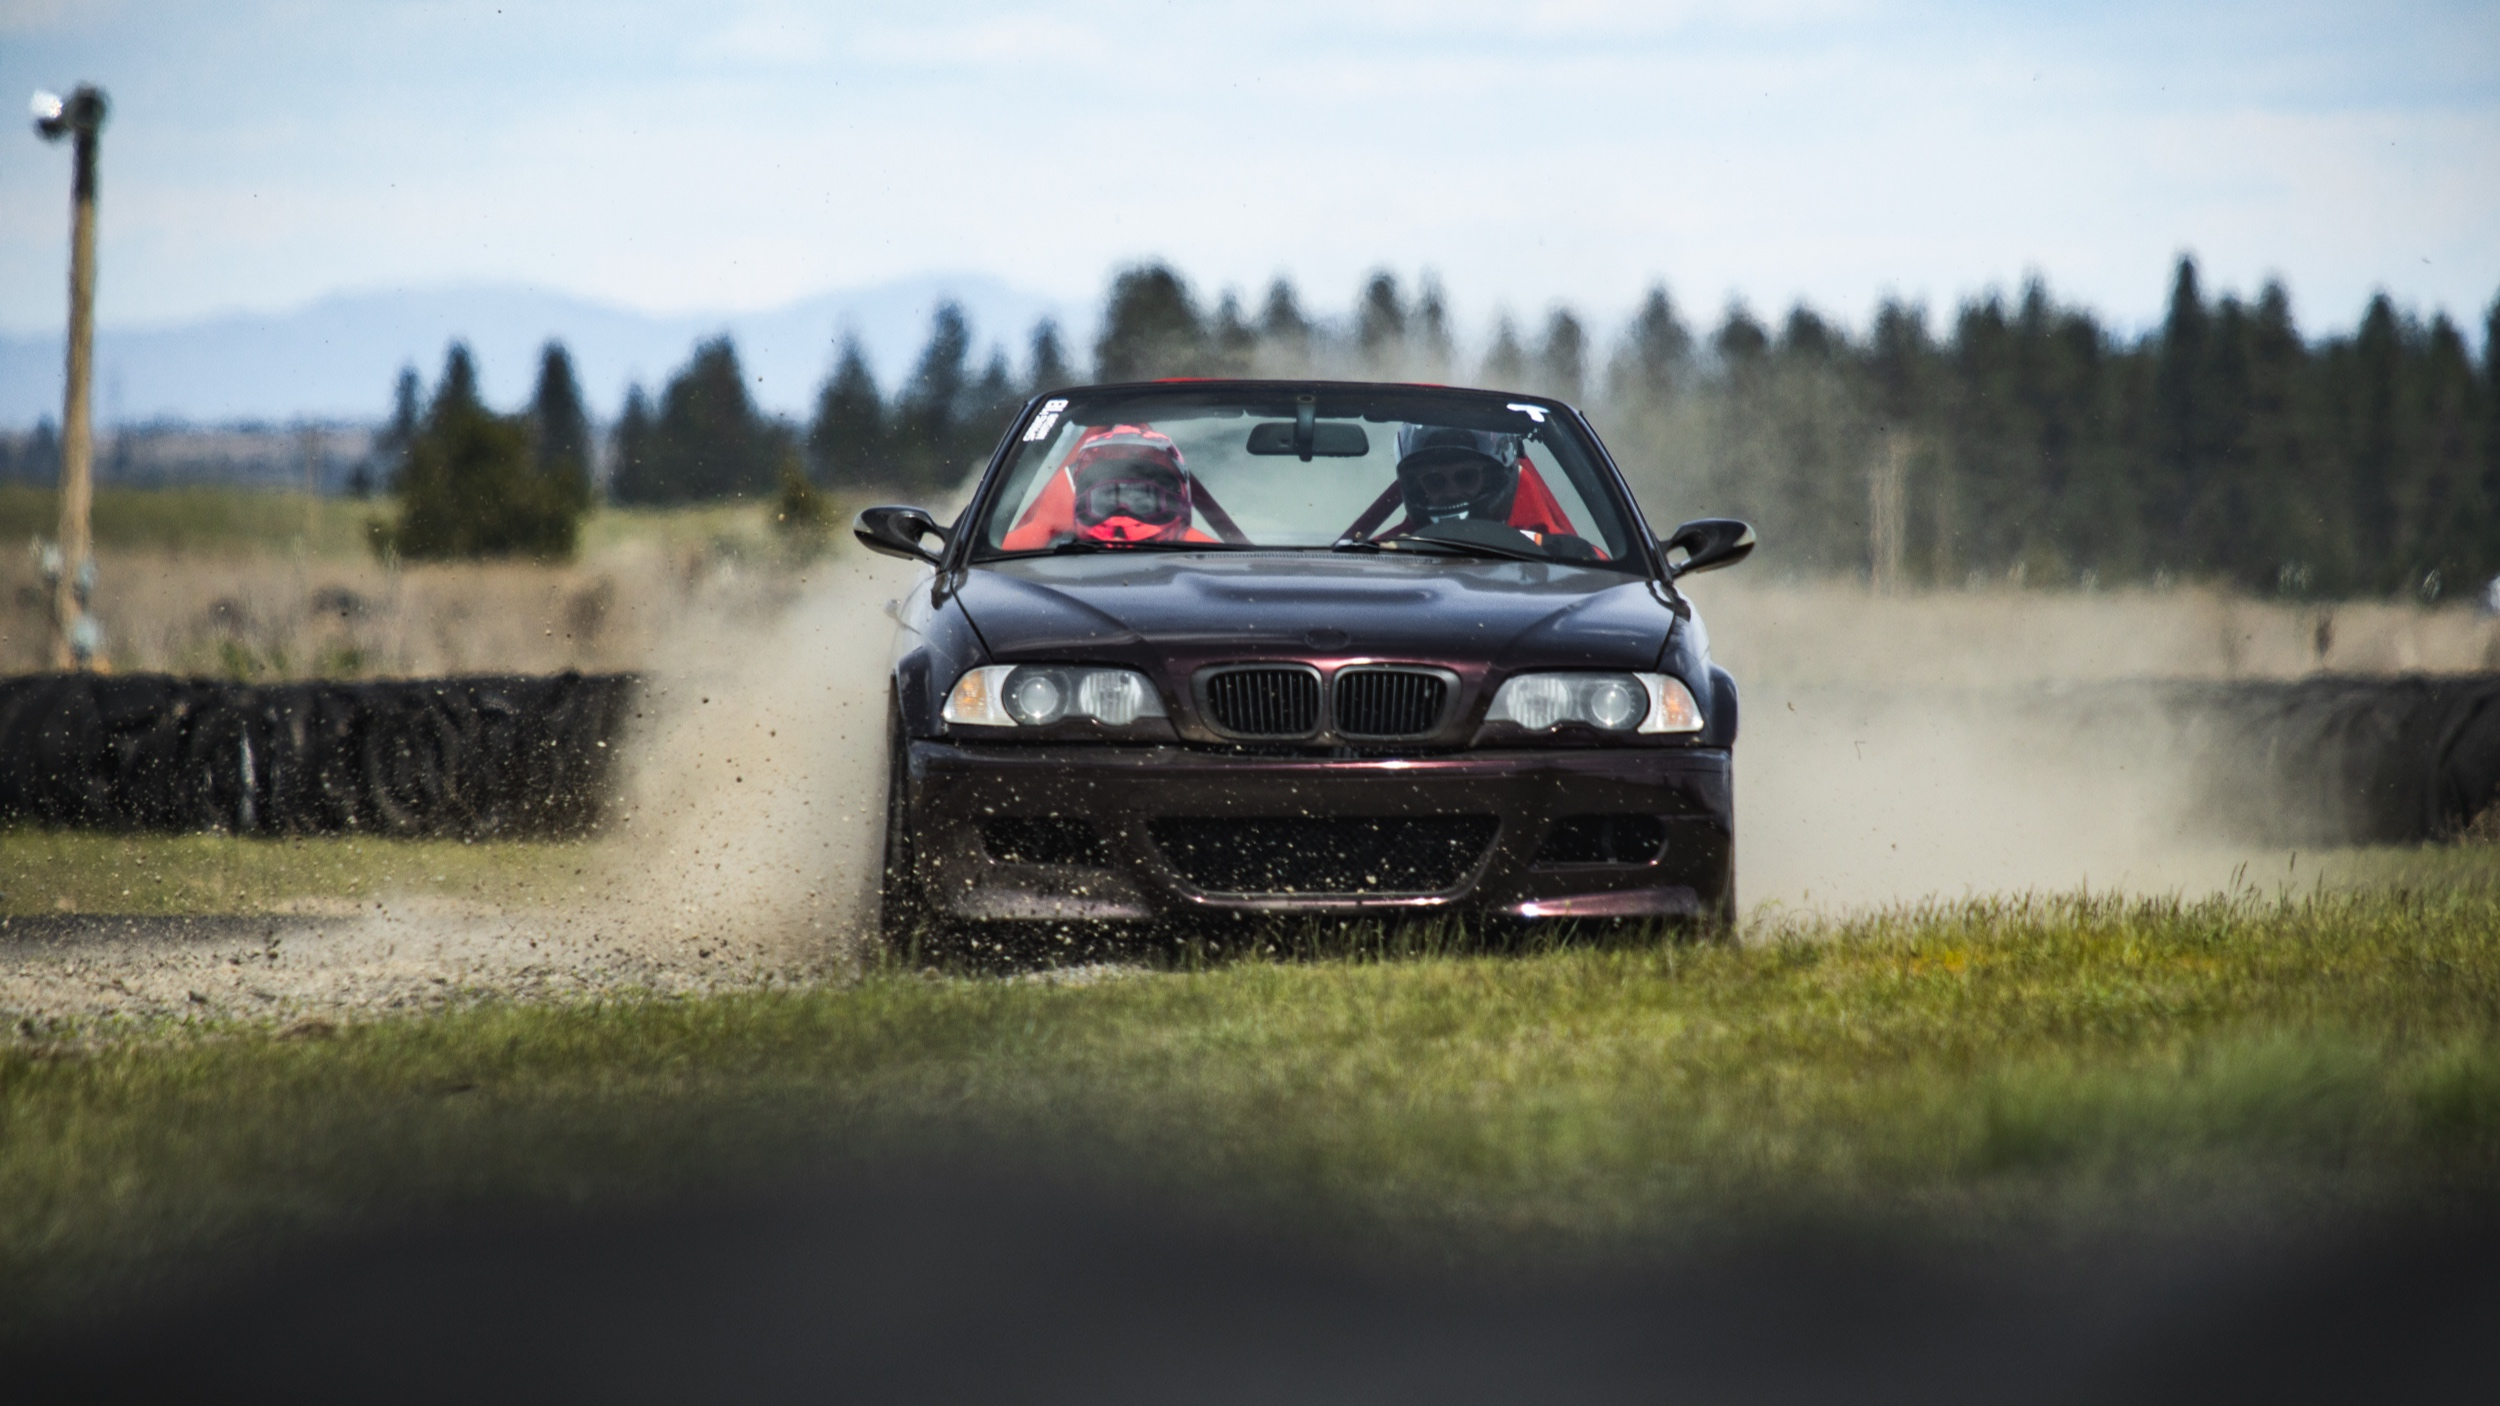 Emily and Edwin in the BMW E46 // Shot @ 400mm f/5.6 1/2500 ISO 400